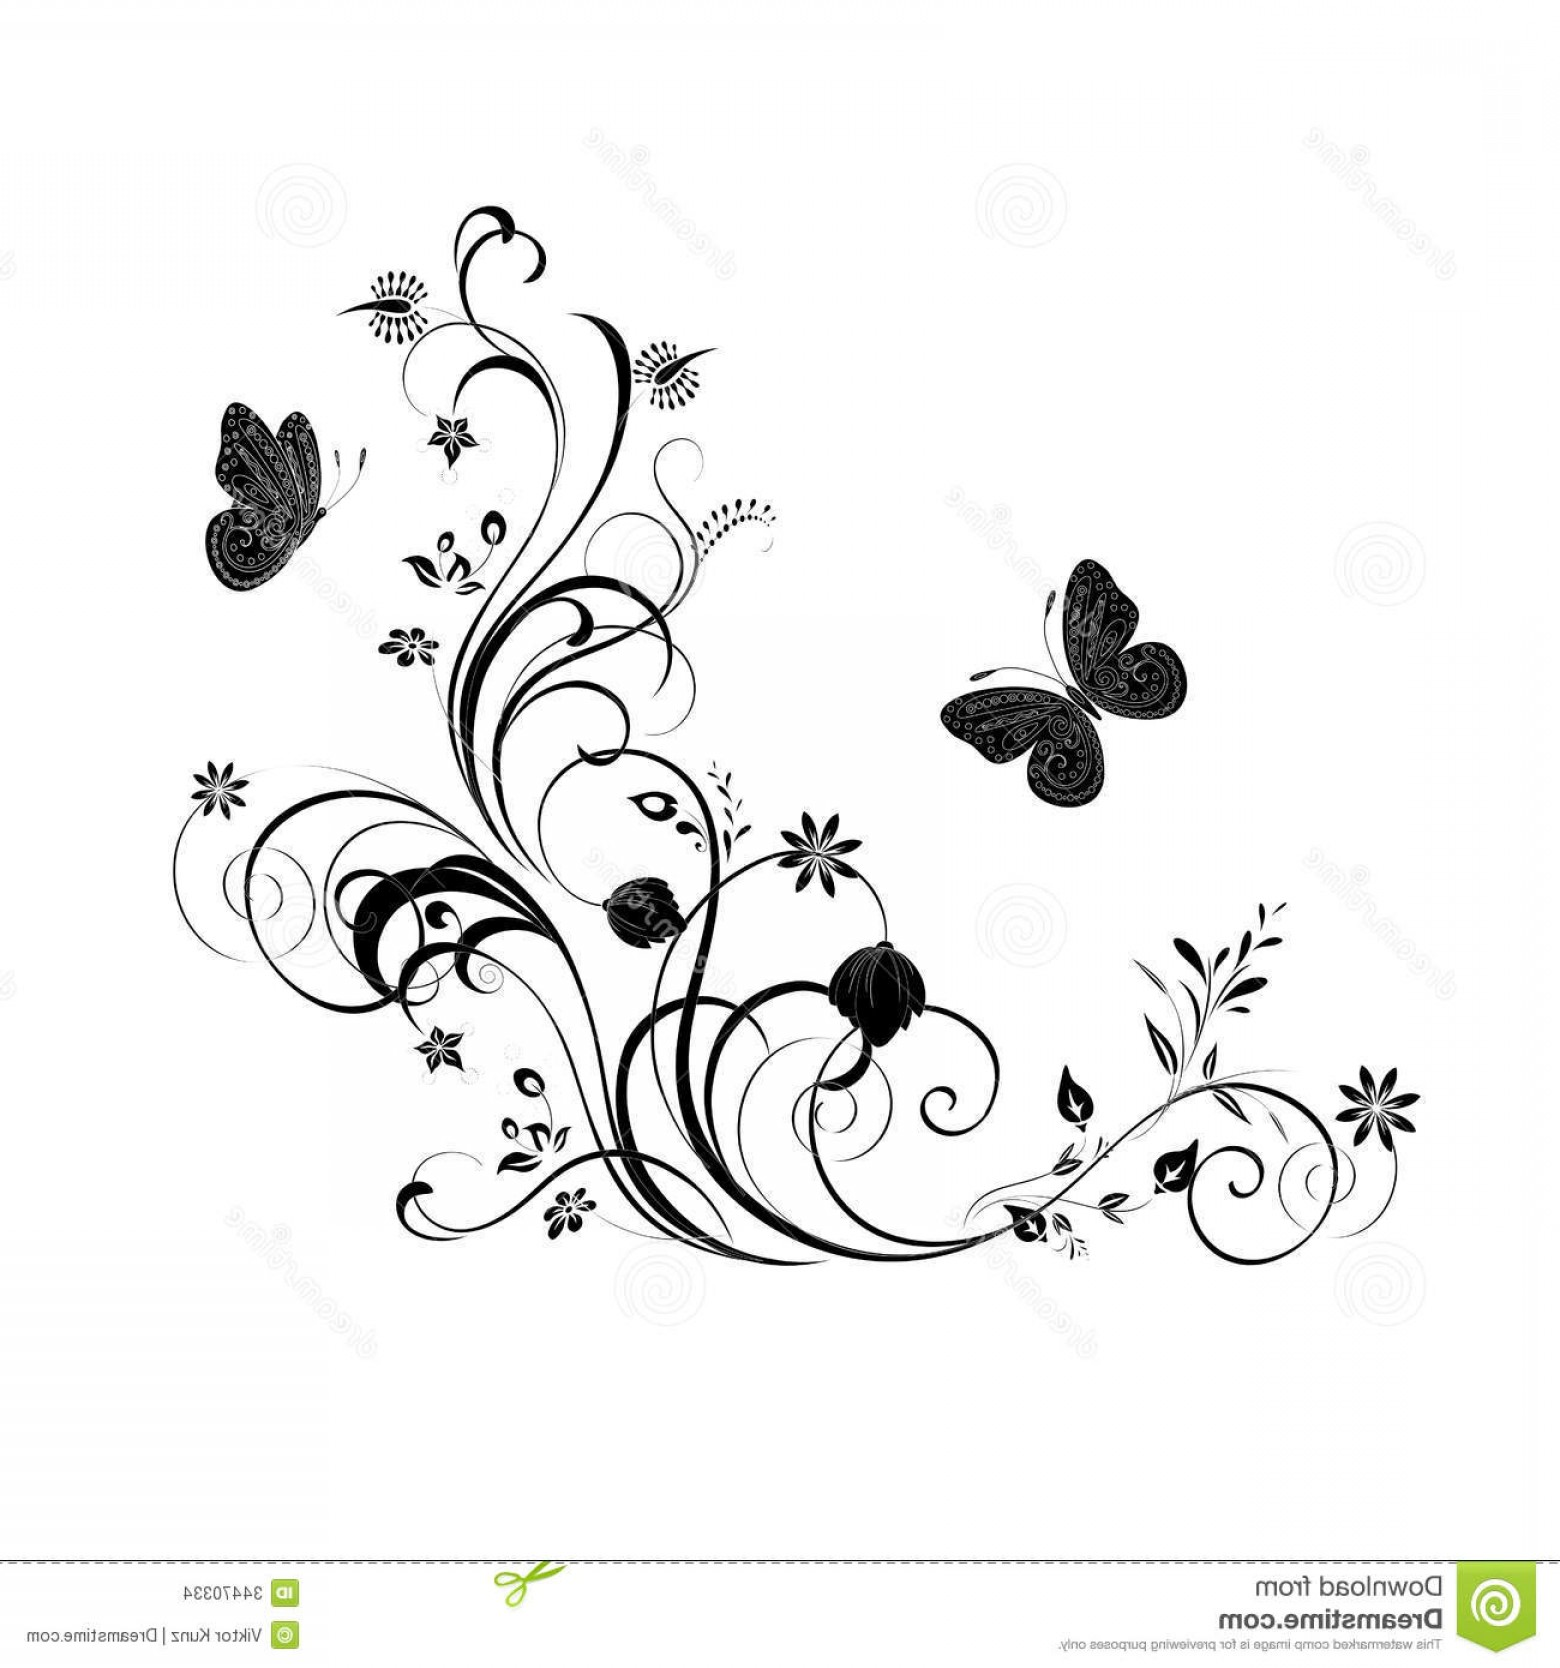 Butter Fly And Flower Vector Black And White: Stock Images Decorative Ornament Vector Floral Butterfly Element Design Image